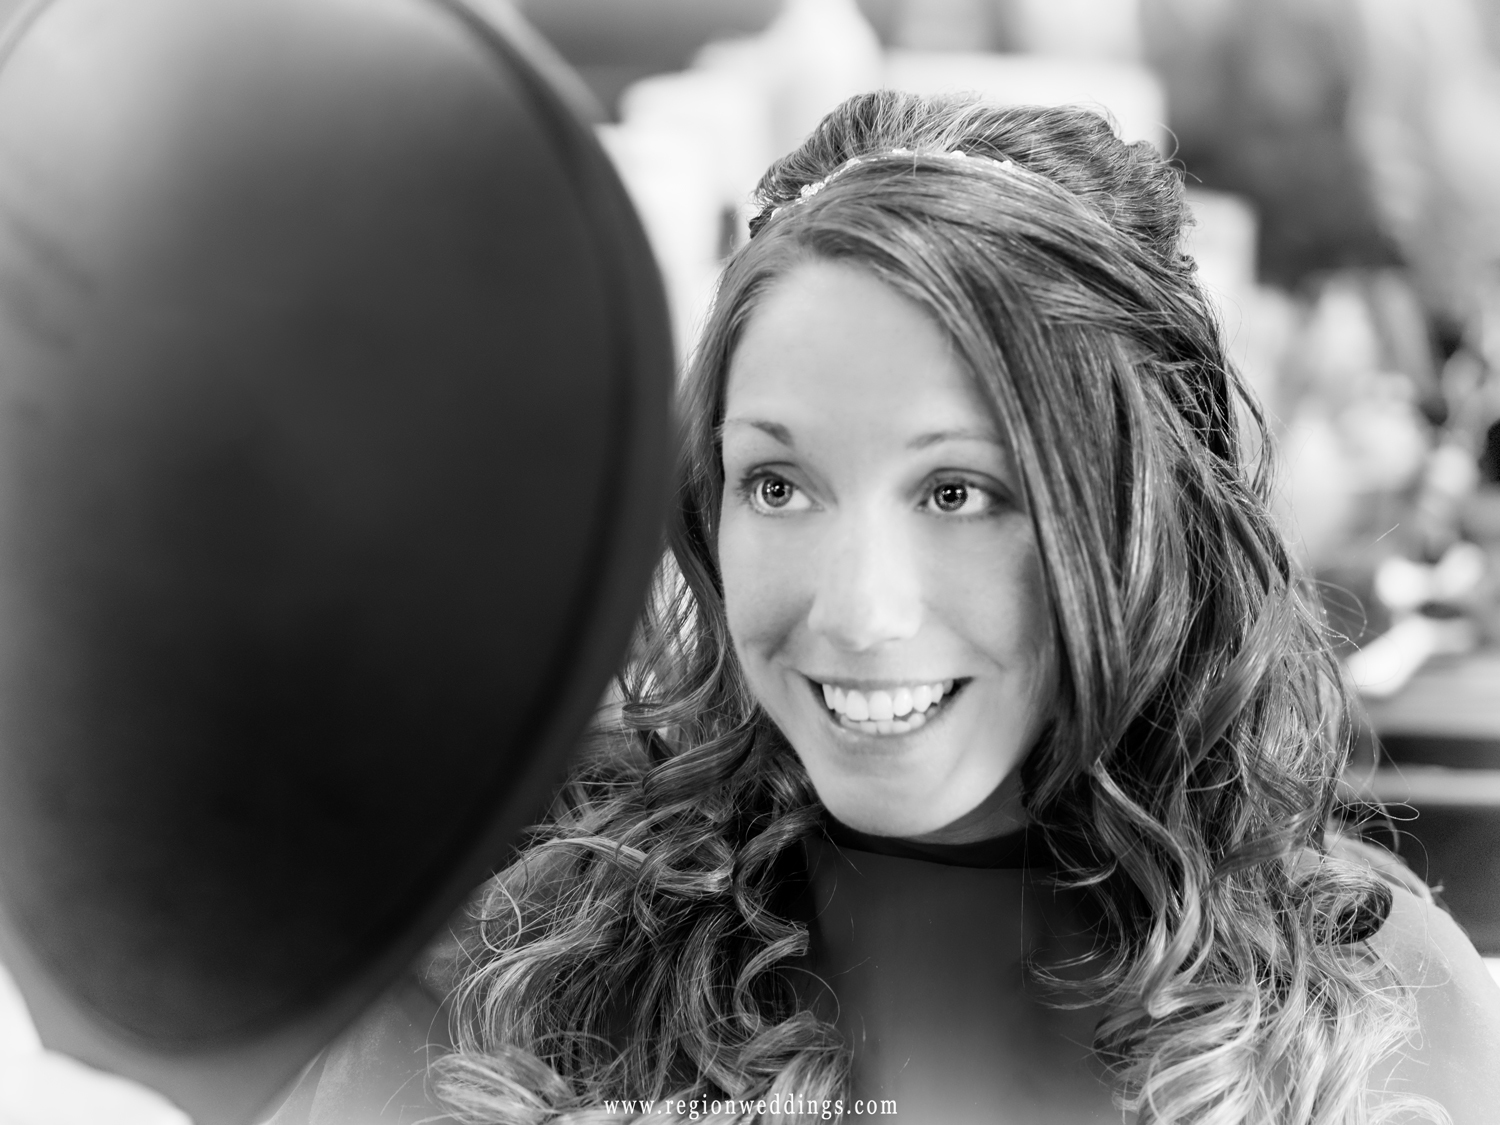 The bride smiles as she looks over her hair while getting ready for her wedding.